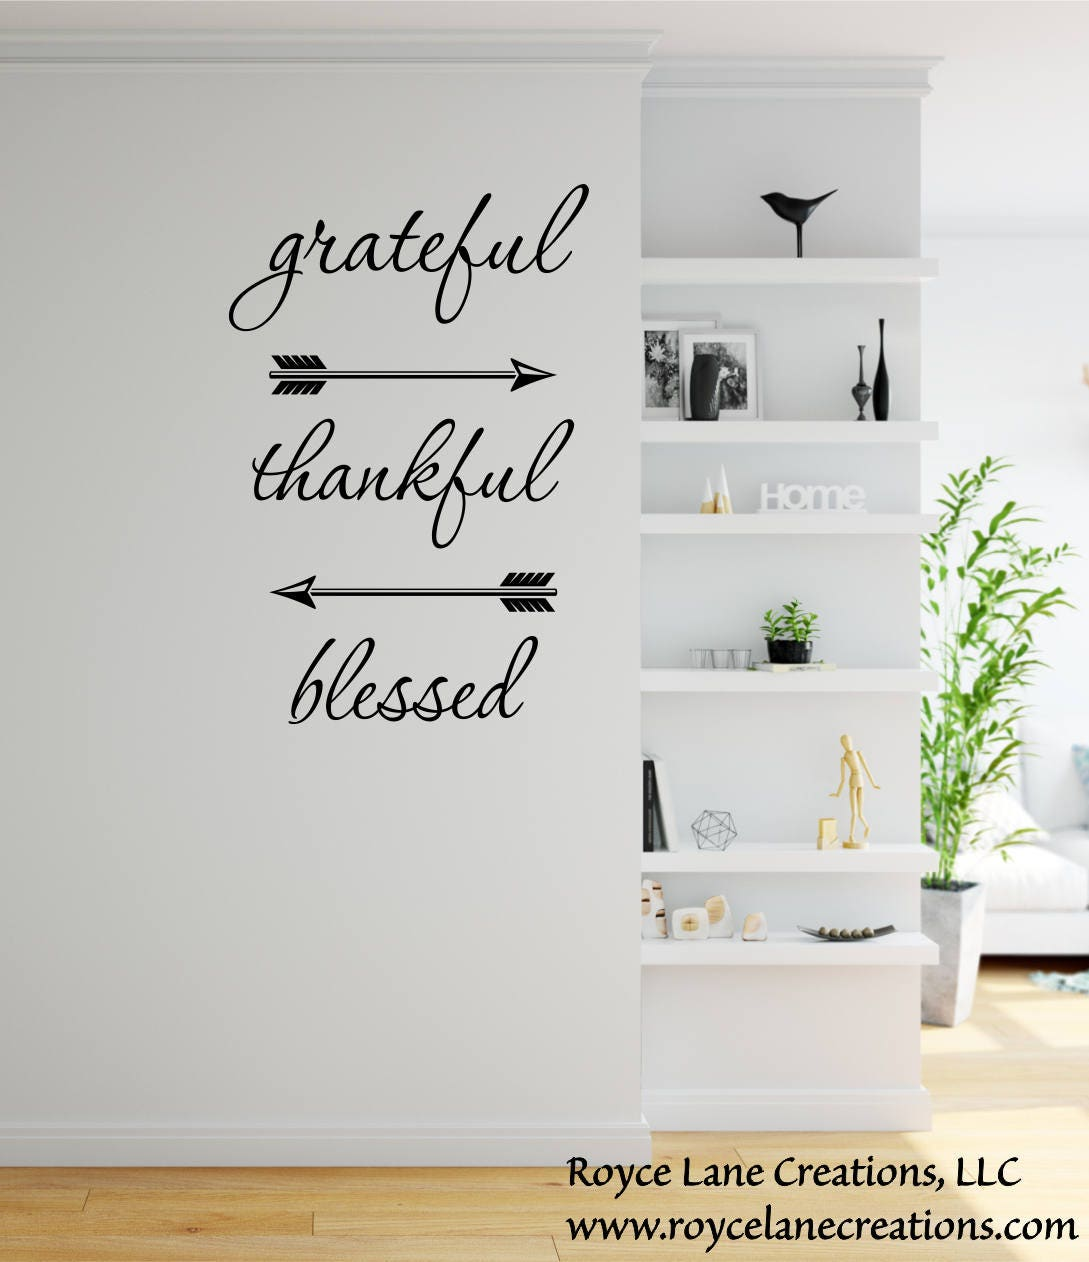 Grateful Thankful Blessed Wall Decal  Dining Room Decor  Dining Room Wall  Decor  Family